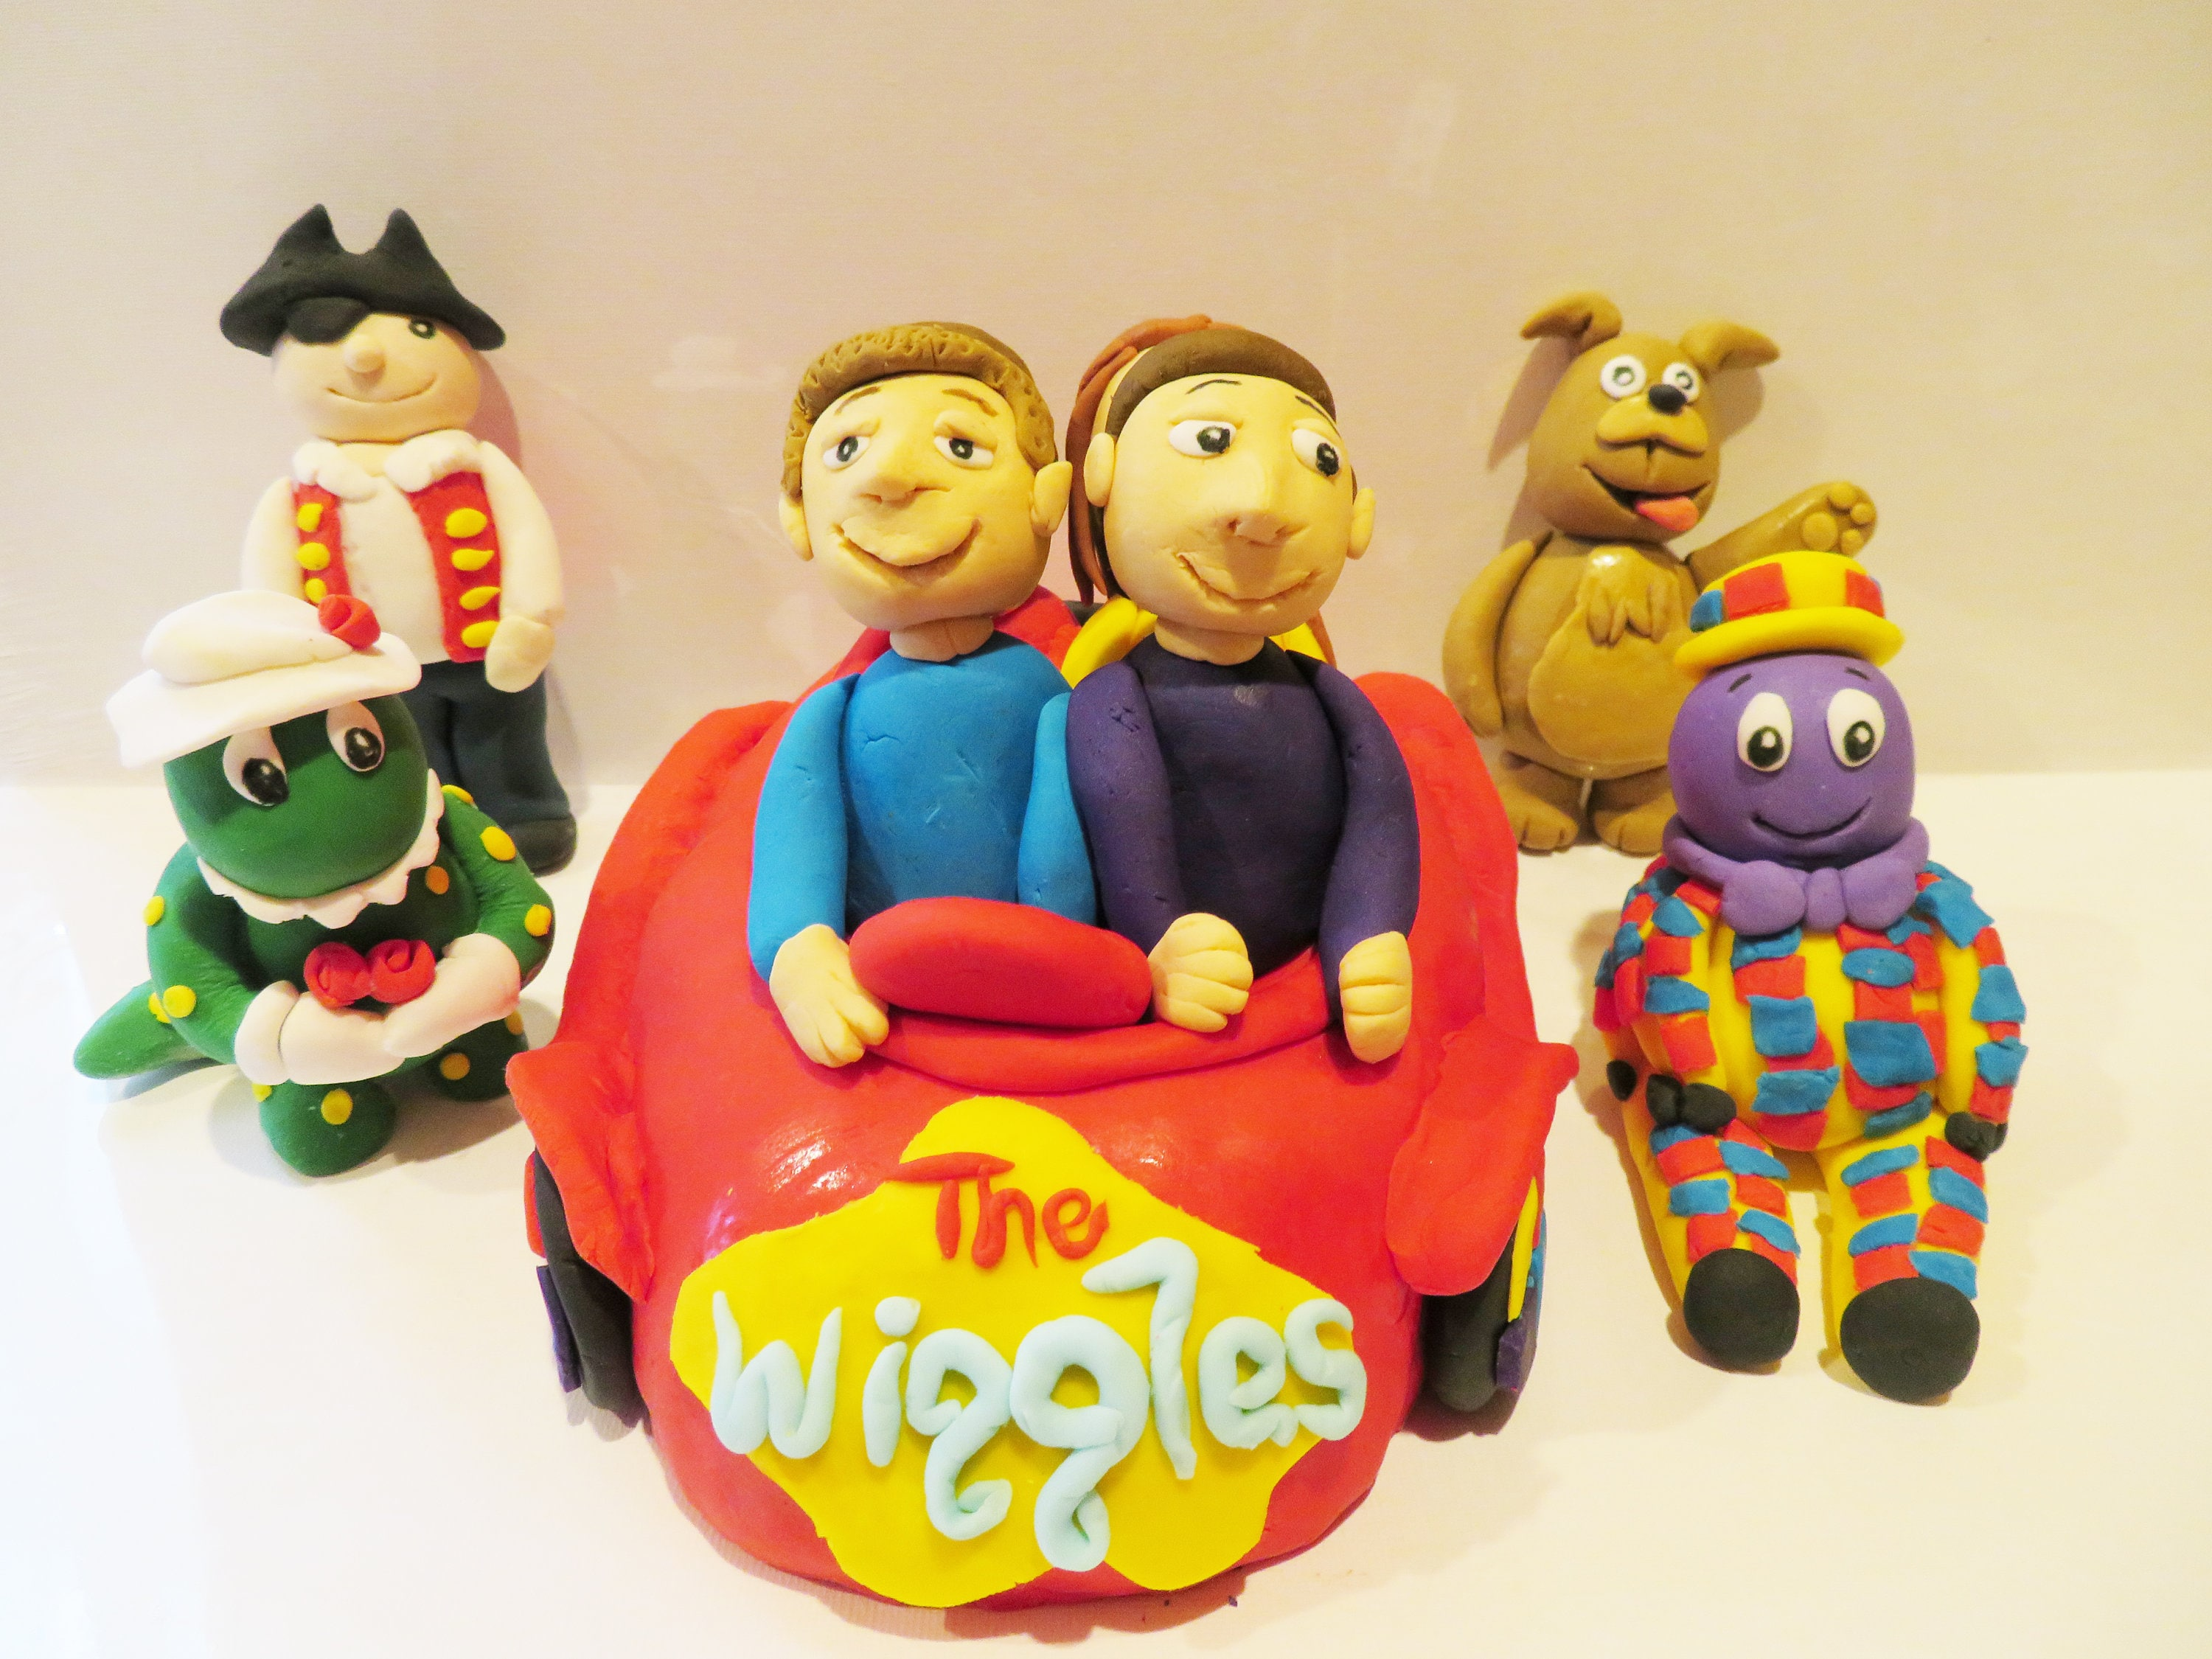 The wiggles cake toppers kids birthday party theme with | Etsy